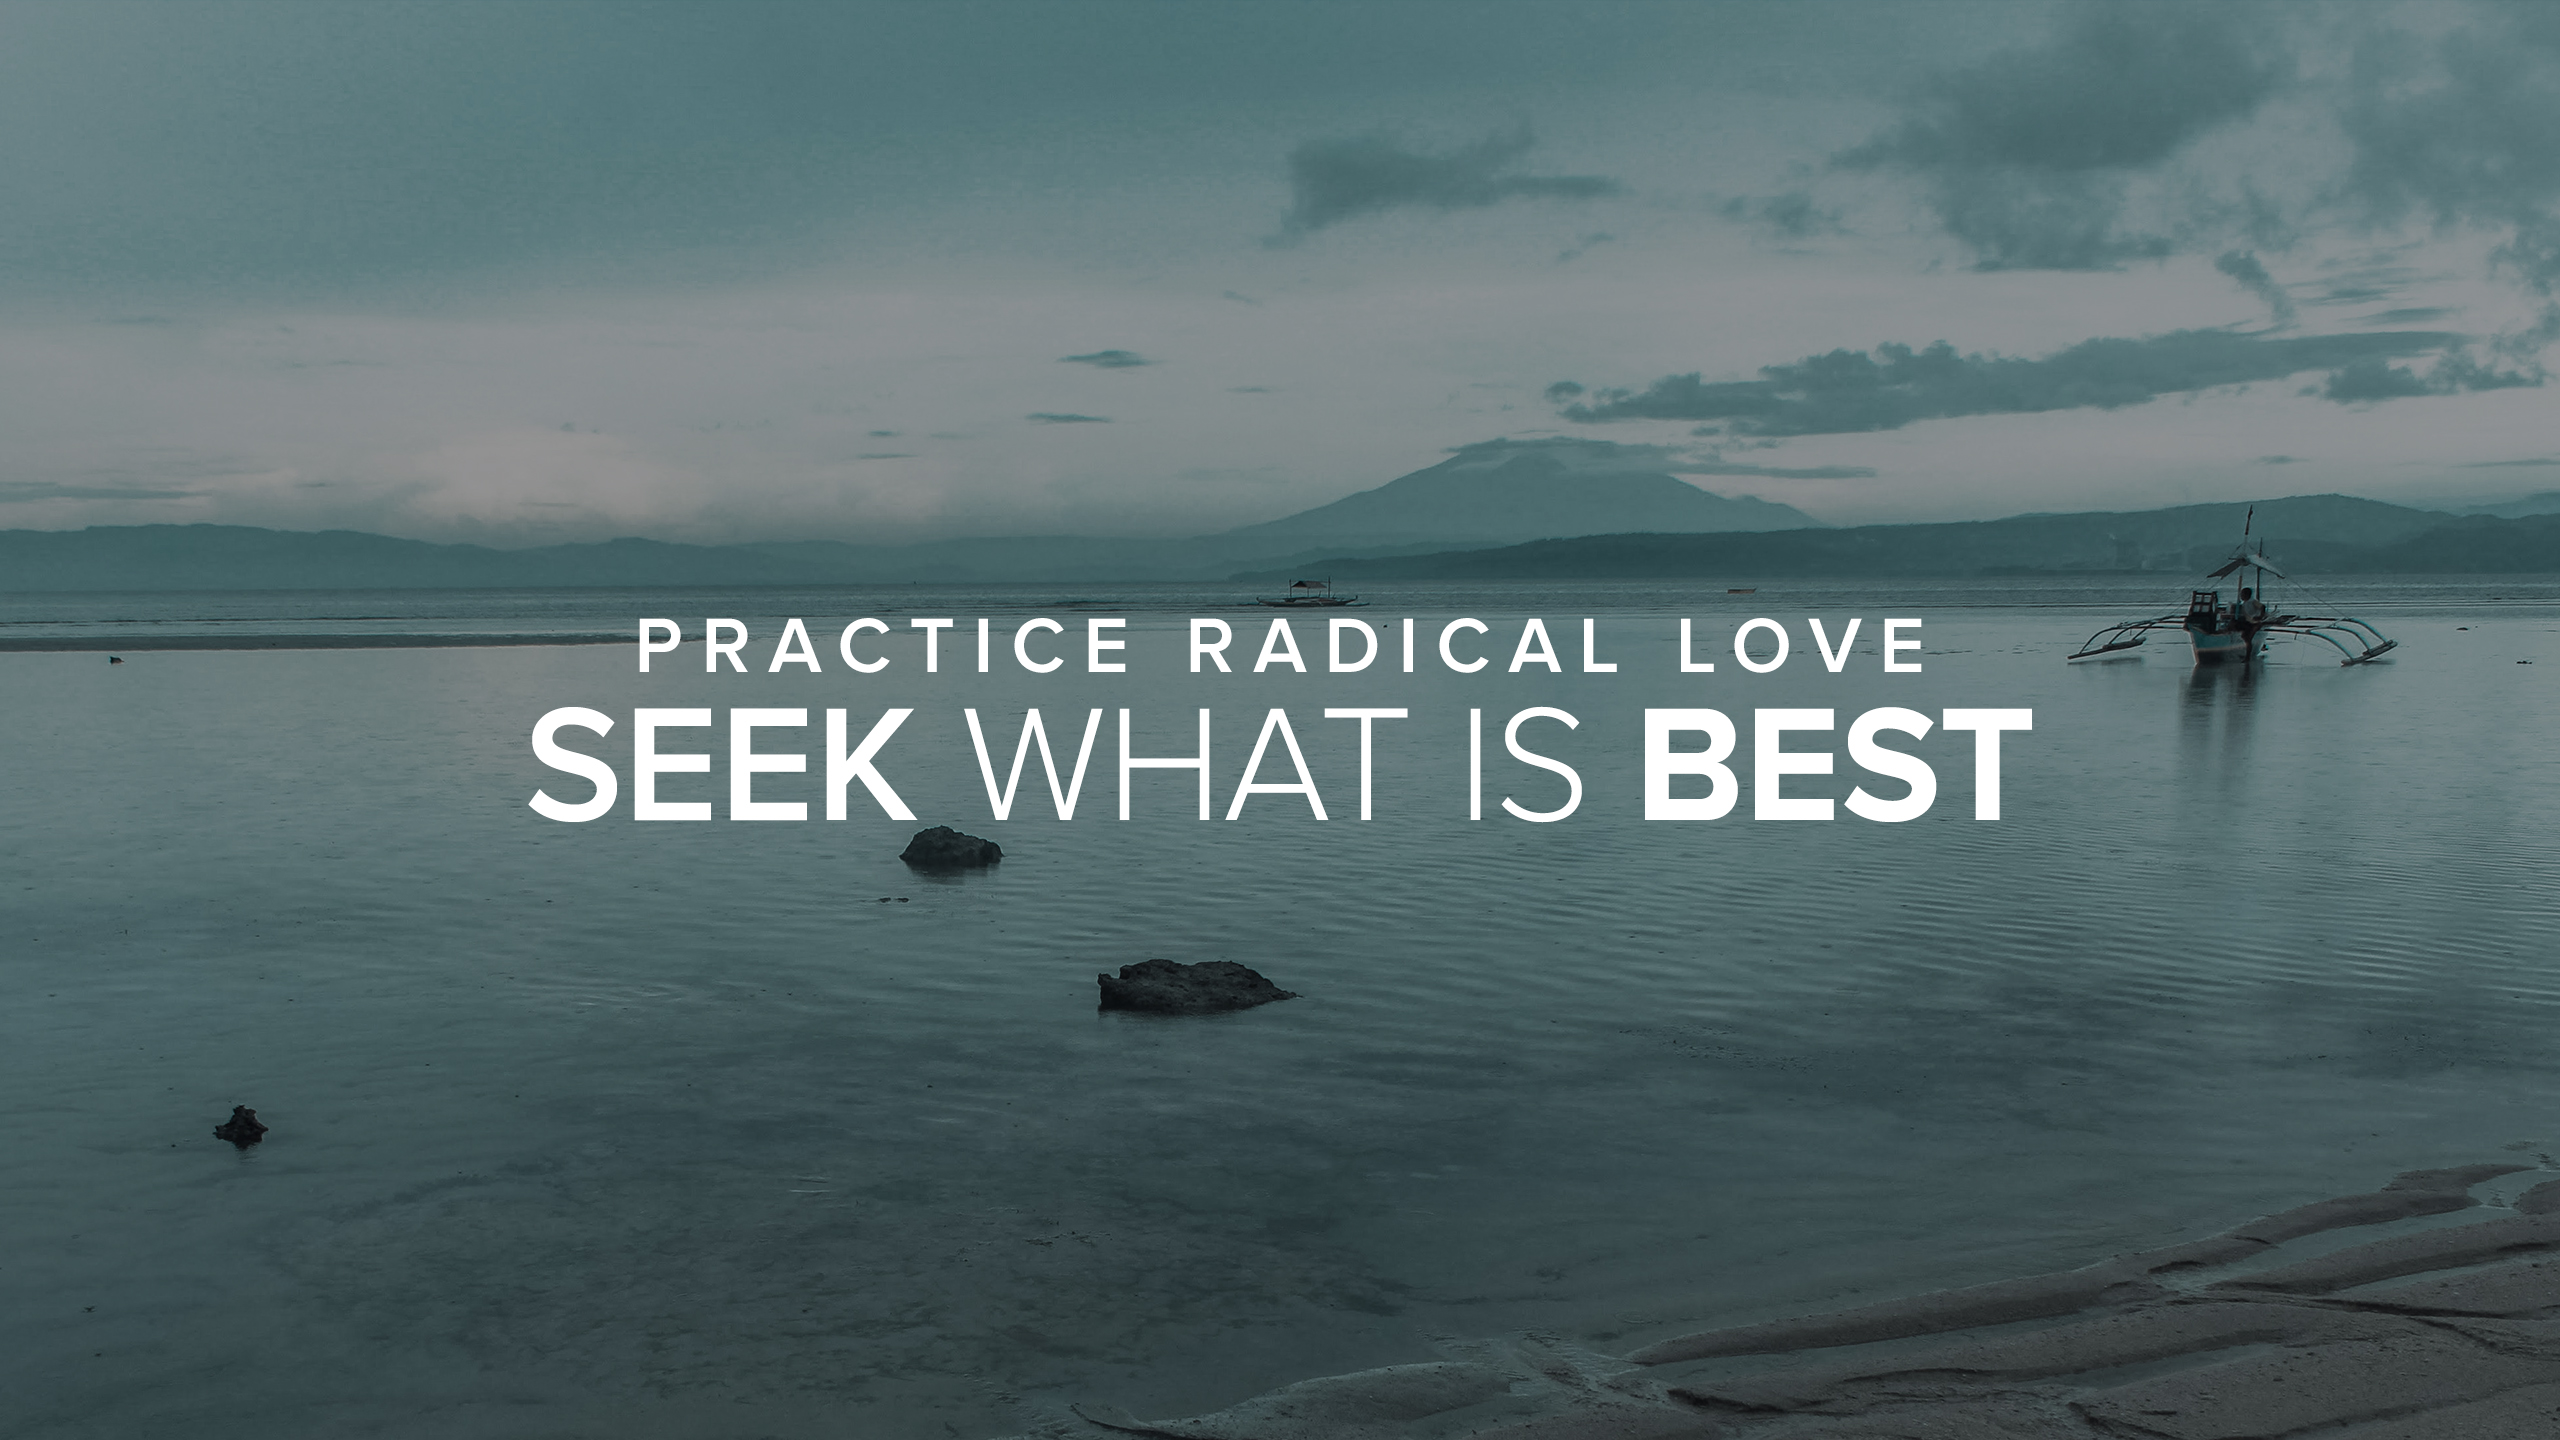 Practice Radical Love: Seek What Is Best